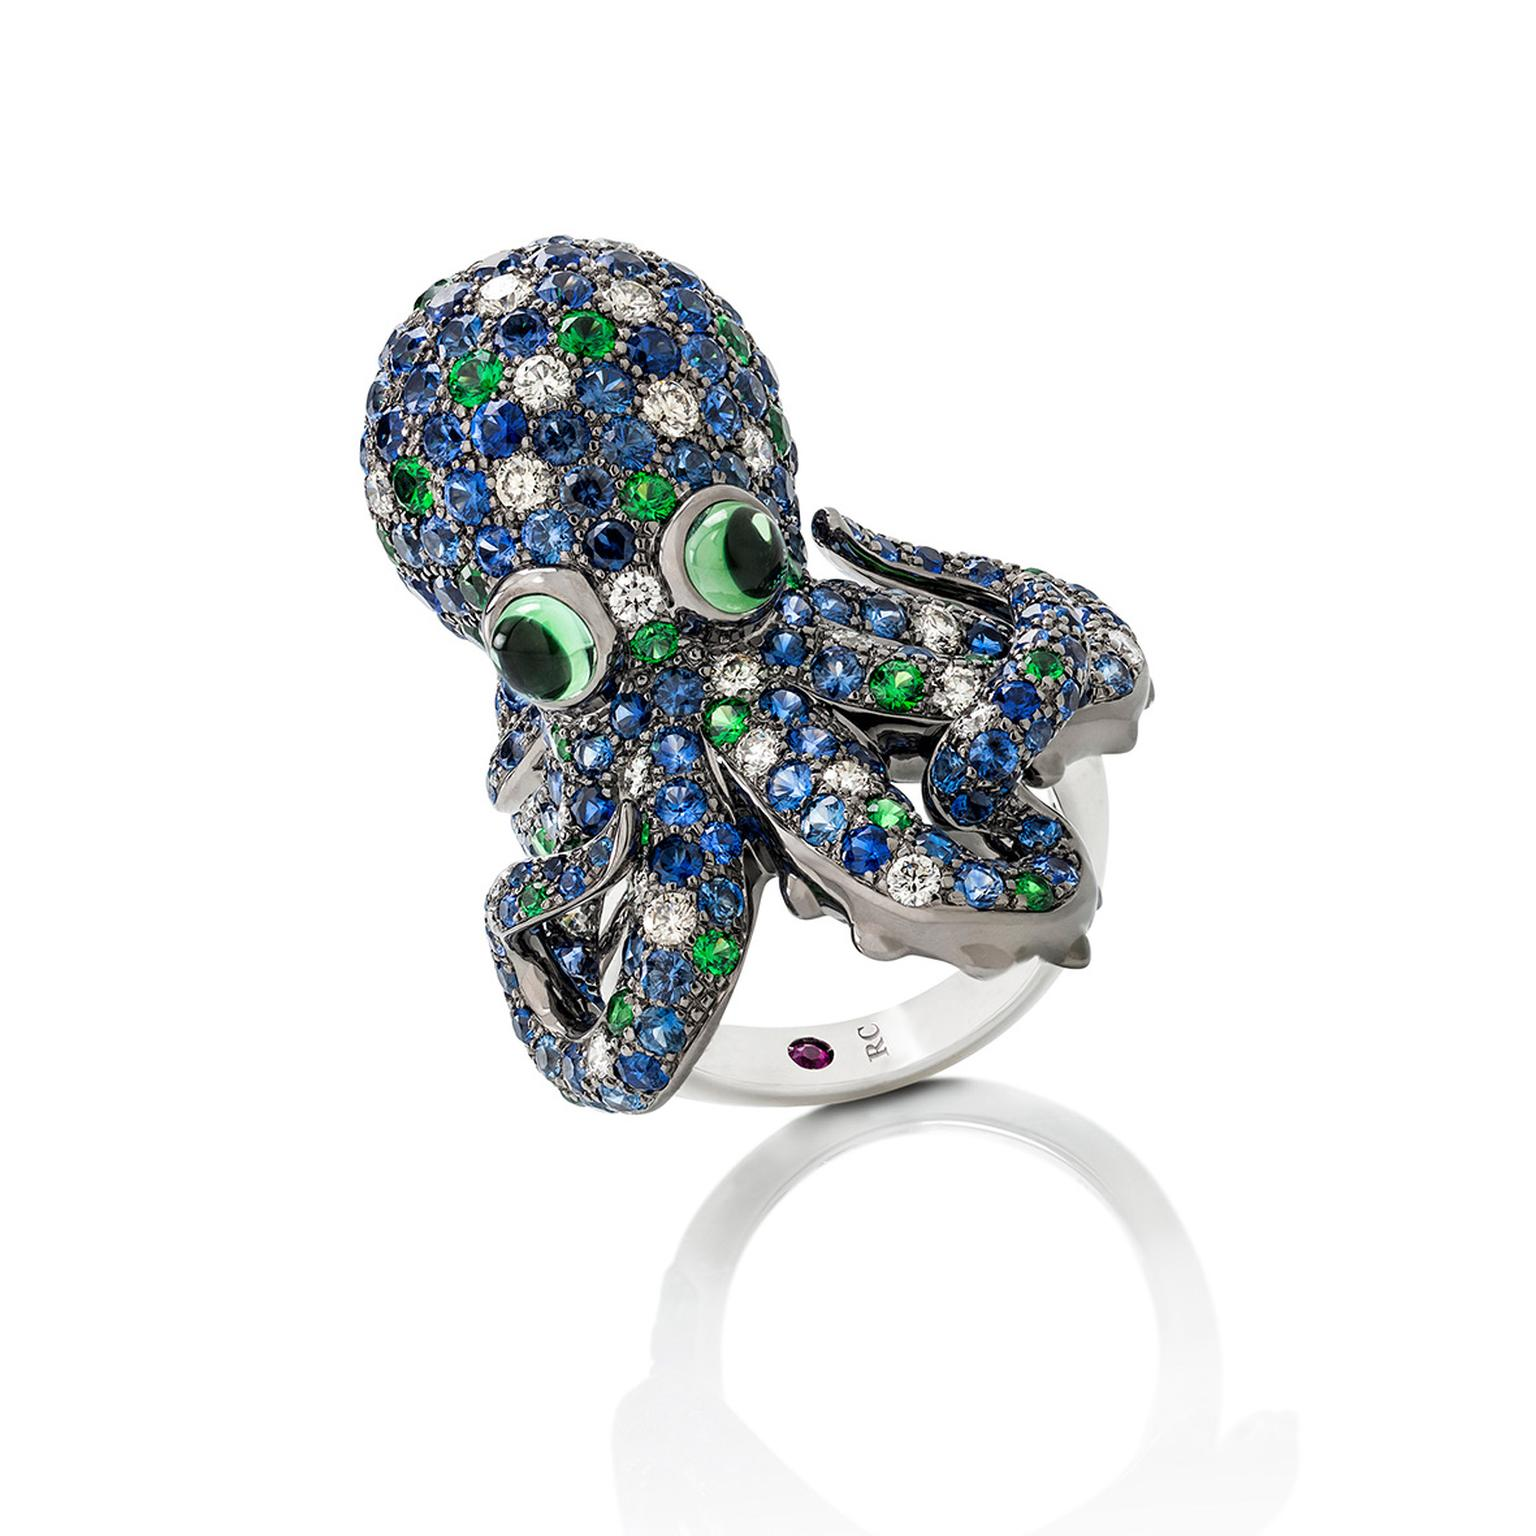 Roberto Coin Octopus ring